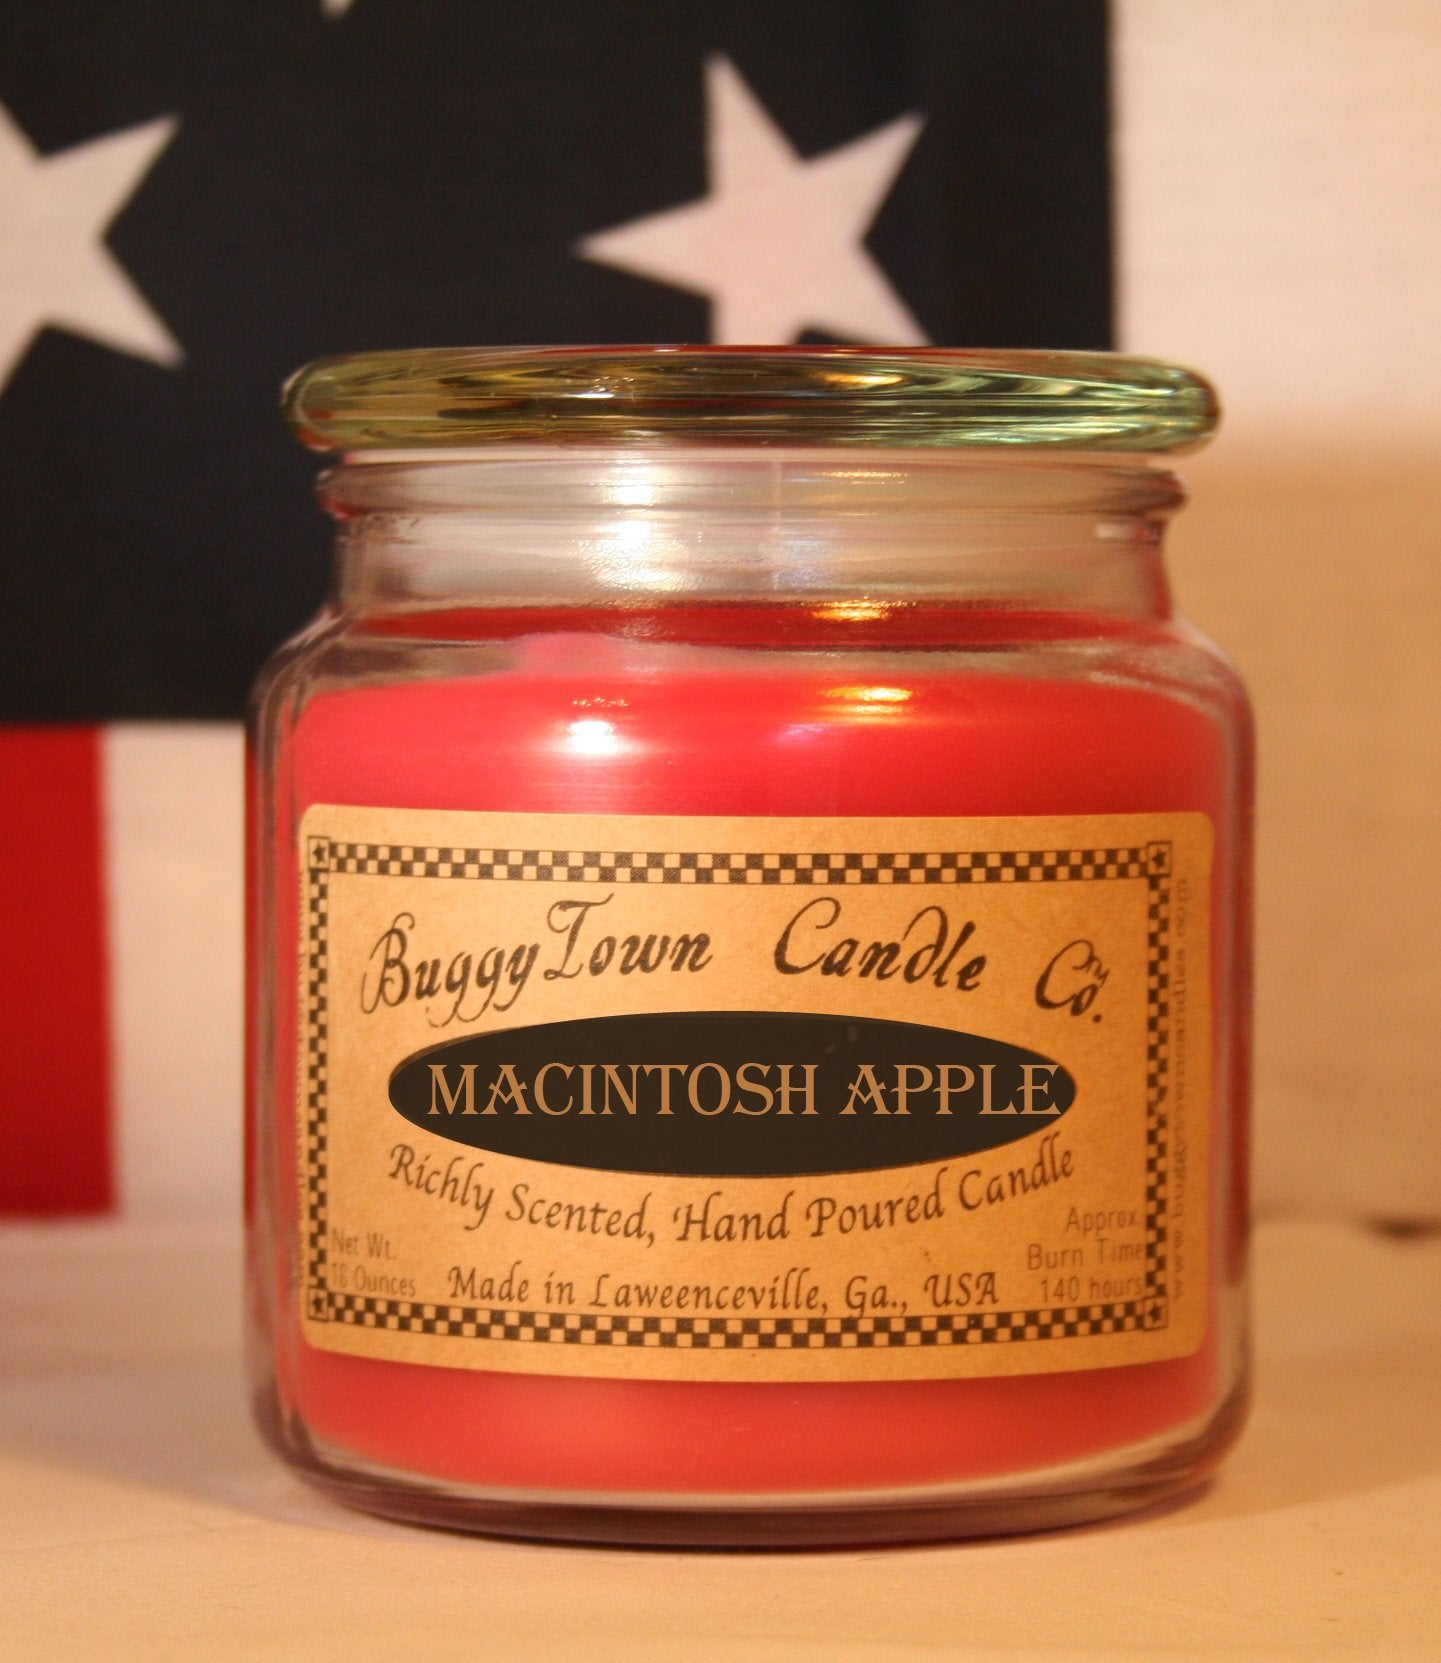 Macintosh Apple Candles